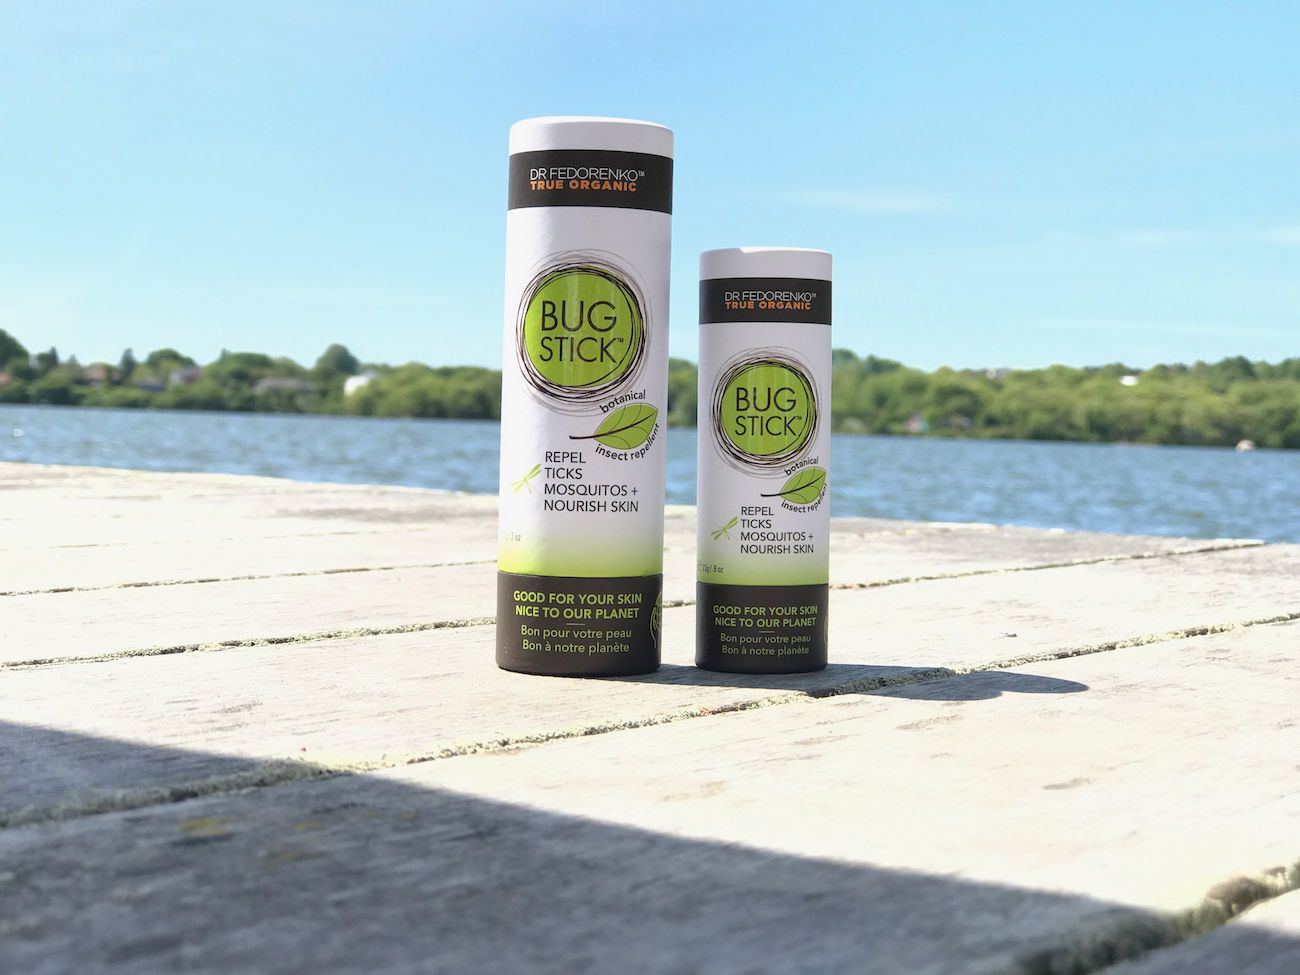 Bug Stick DEET Free Insect Repellent